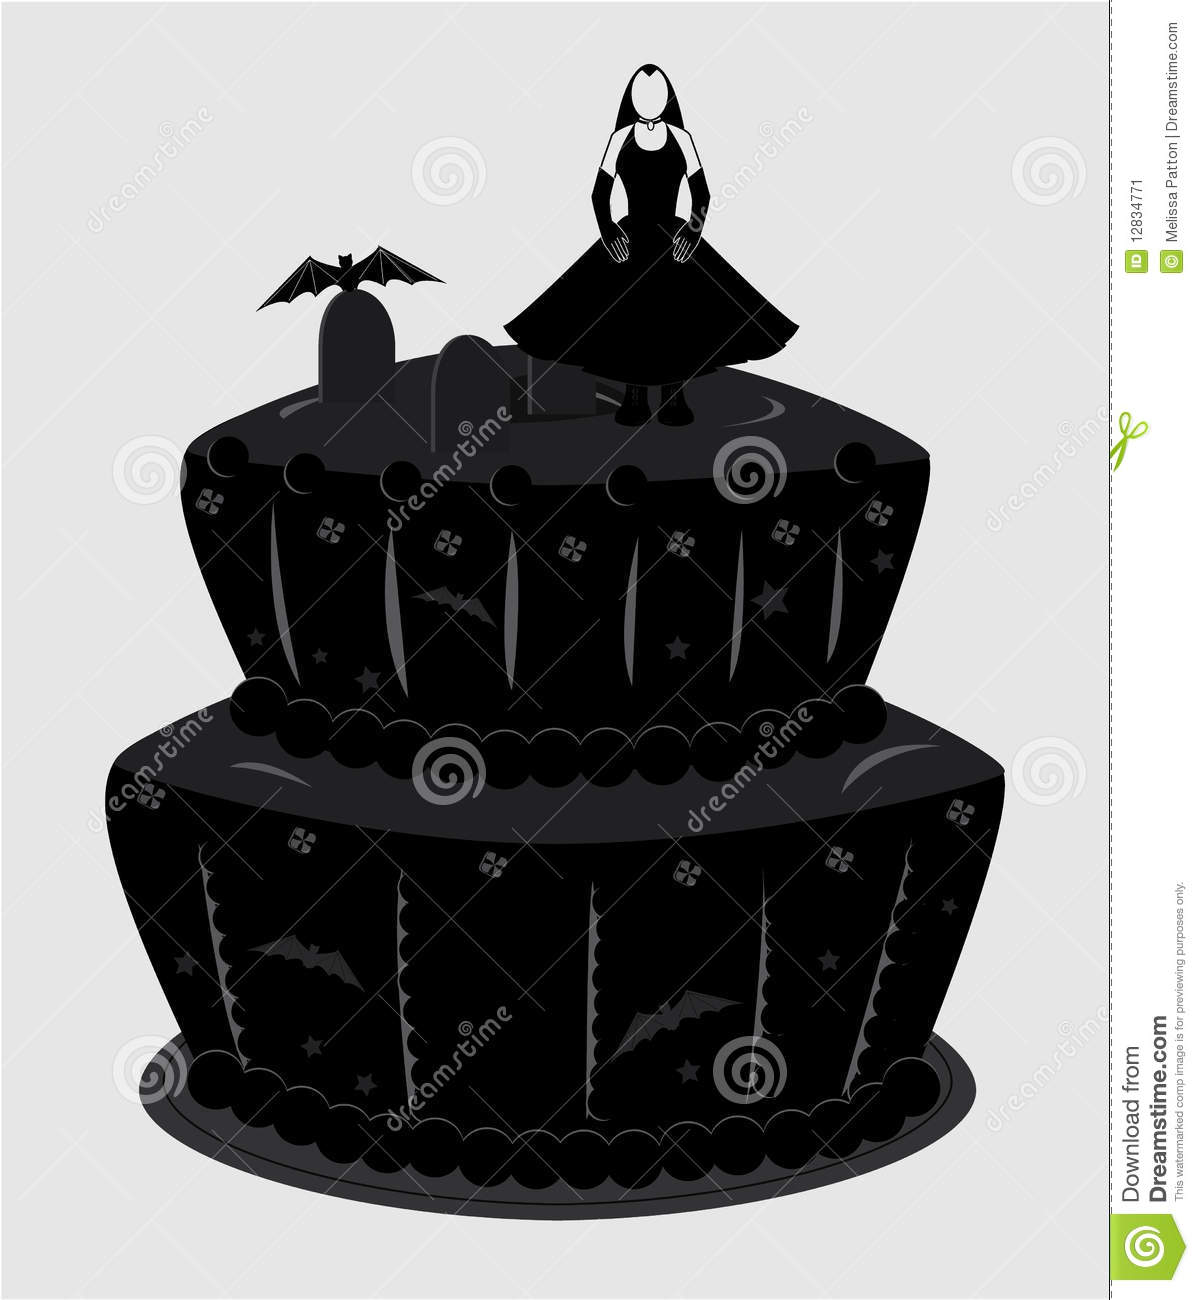 Sensational Goth Cake Stock Vector Illustration Of Female Decorated 12834771 Funny Birthday Cards Online Aeocydamsfinfo